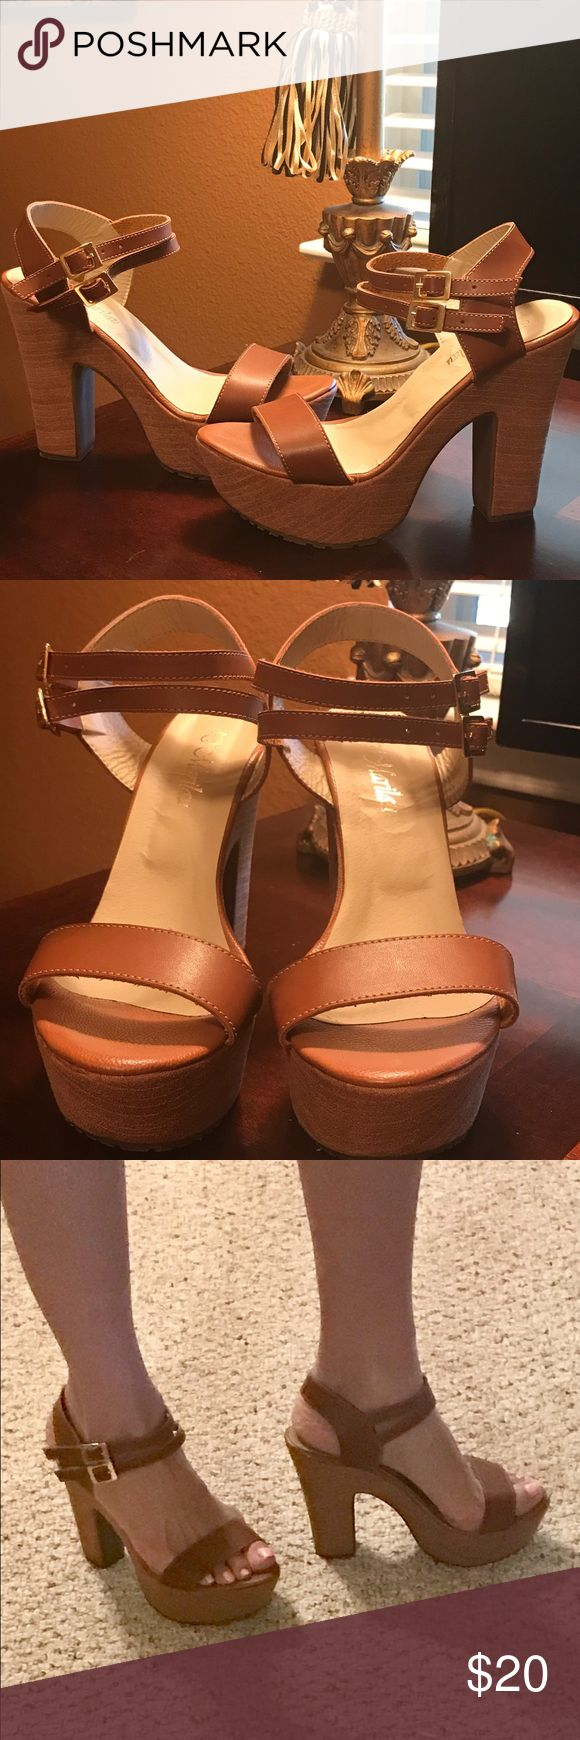 "High Heel Sandals in a camel color 5"" heel, 2"" platform sandals in a camel color. Never worn. In excellent condition. D' Marilau Shoes Sandals"